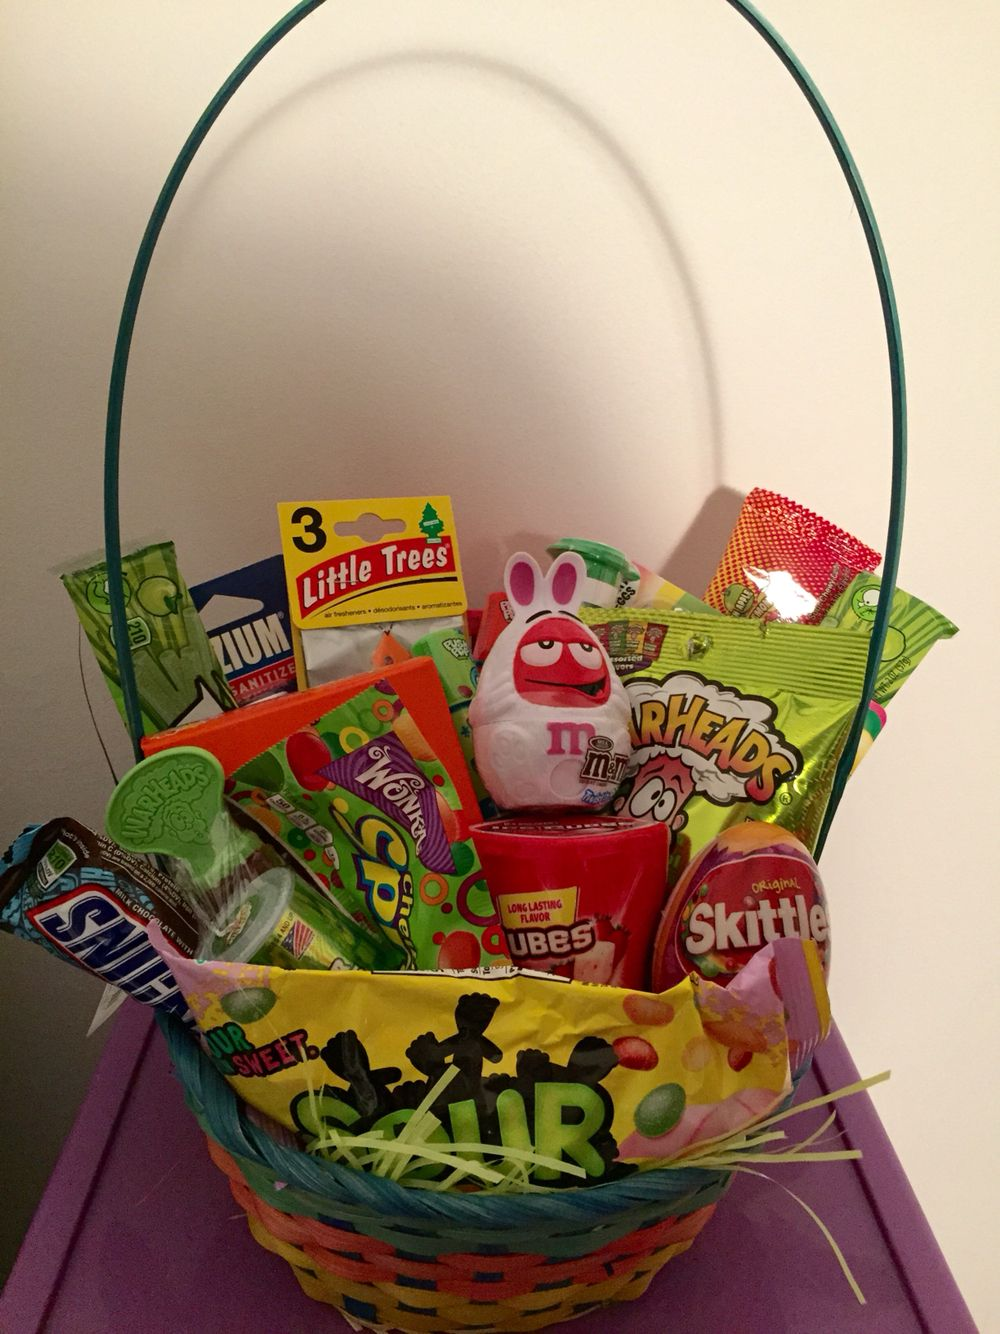 Easter basket for my boyfriend full of his favorite candies and easter basket for my boyfriend full of his favorite candies and goodies negle Choice Image